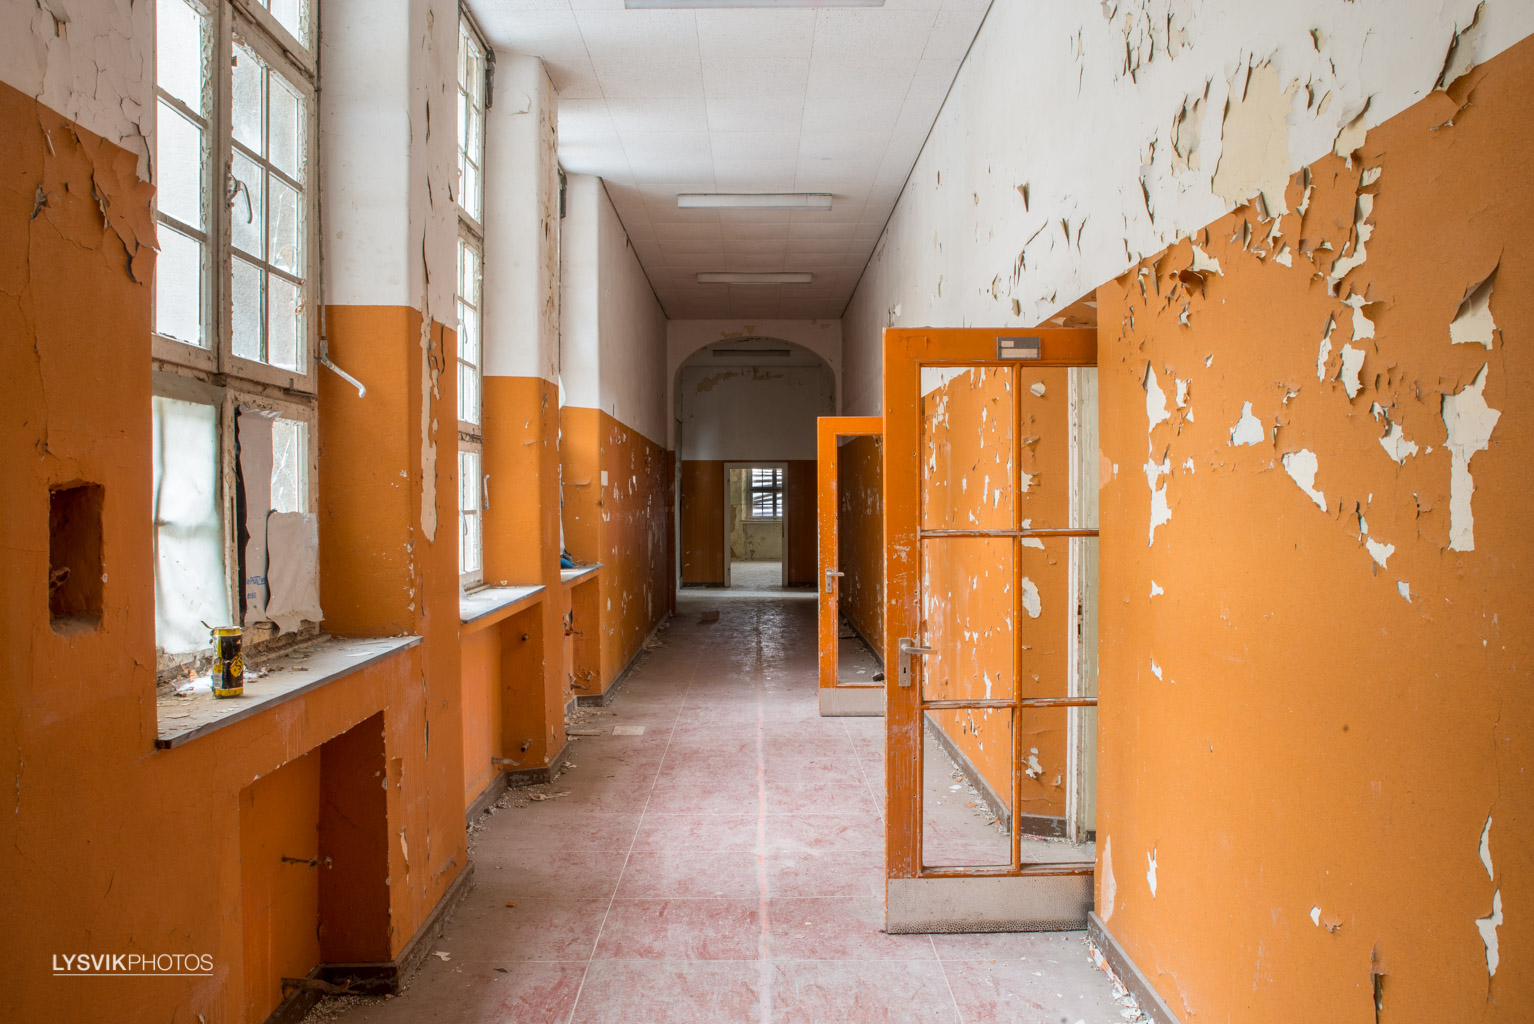 Dilapidated hallways in Orange 2/3